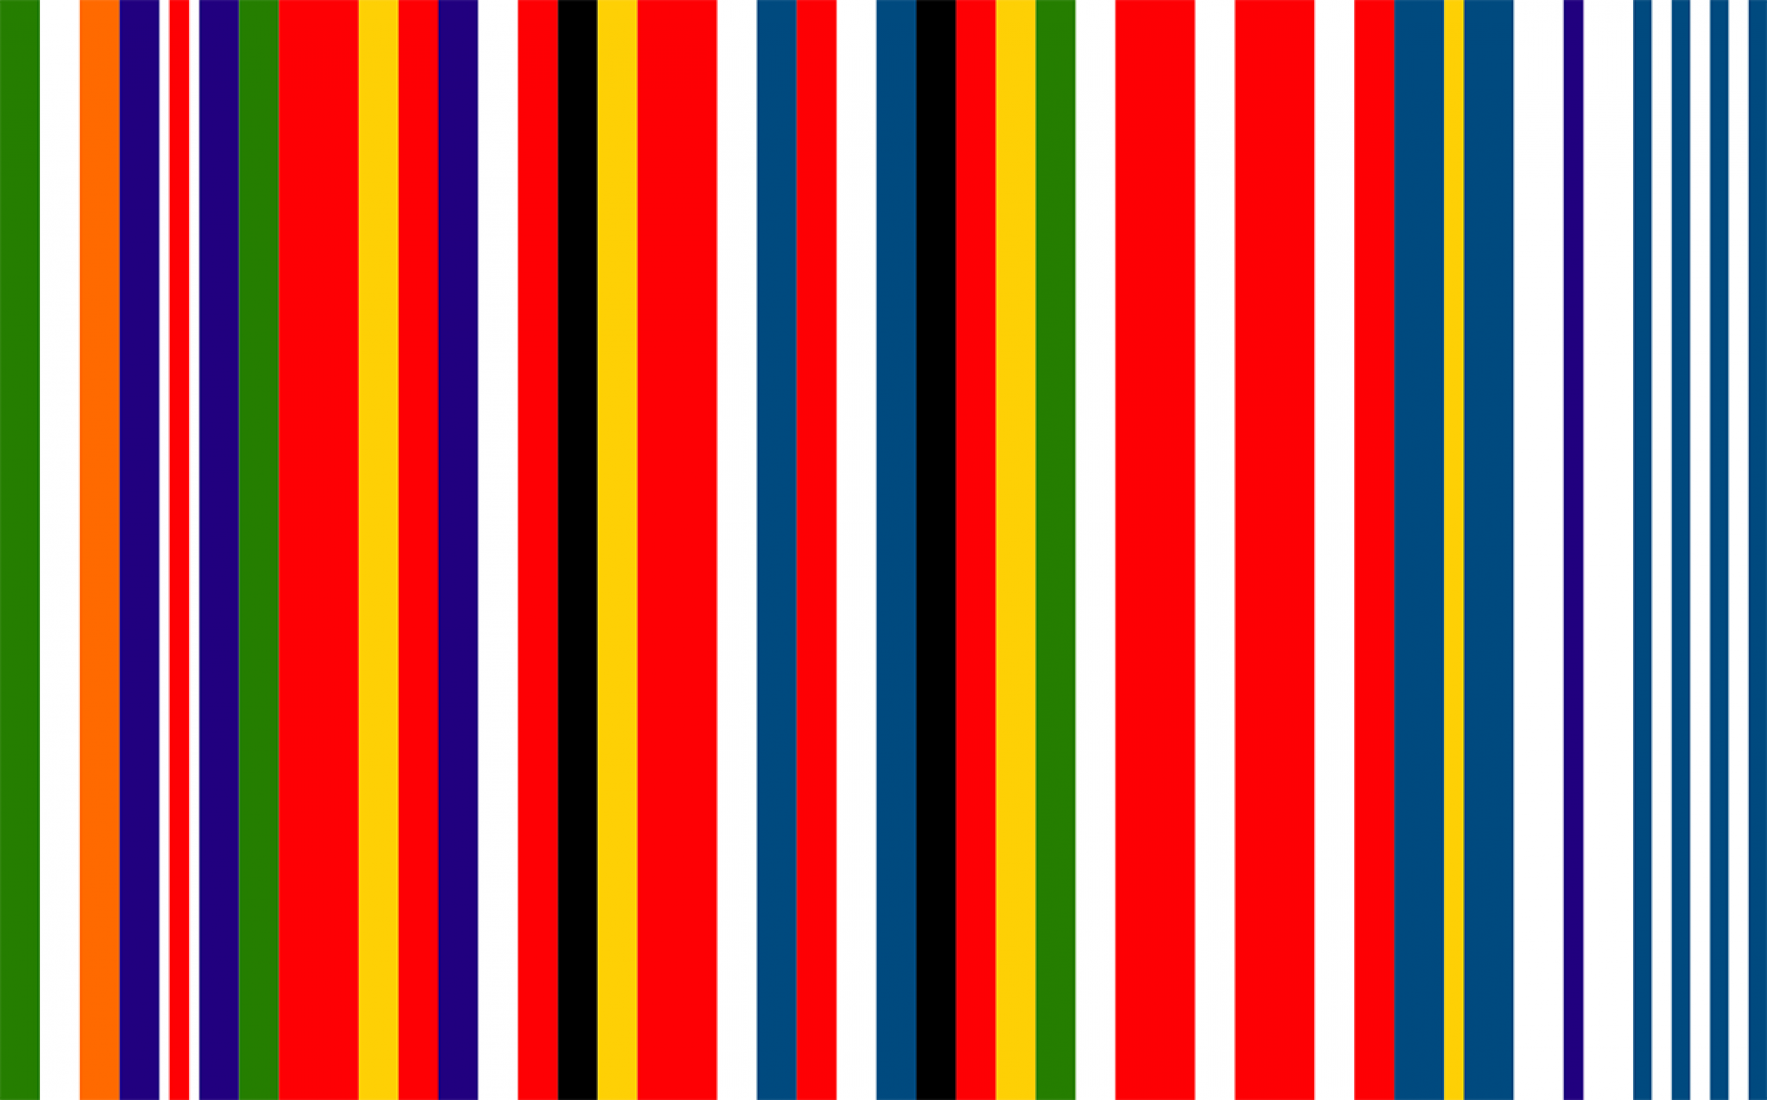 Fictional flag invented by Dutch architect Rem Koolhaas in 2002. Was never adopted as a flag, so not an official symbol. Was however used as a logo of the Austrian EU presidency a few years ago.